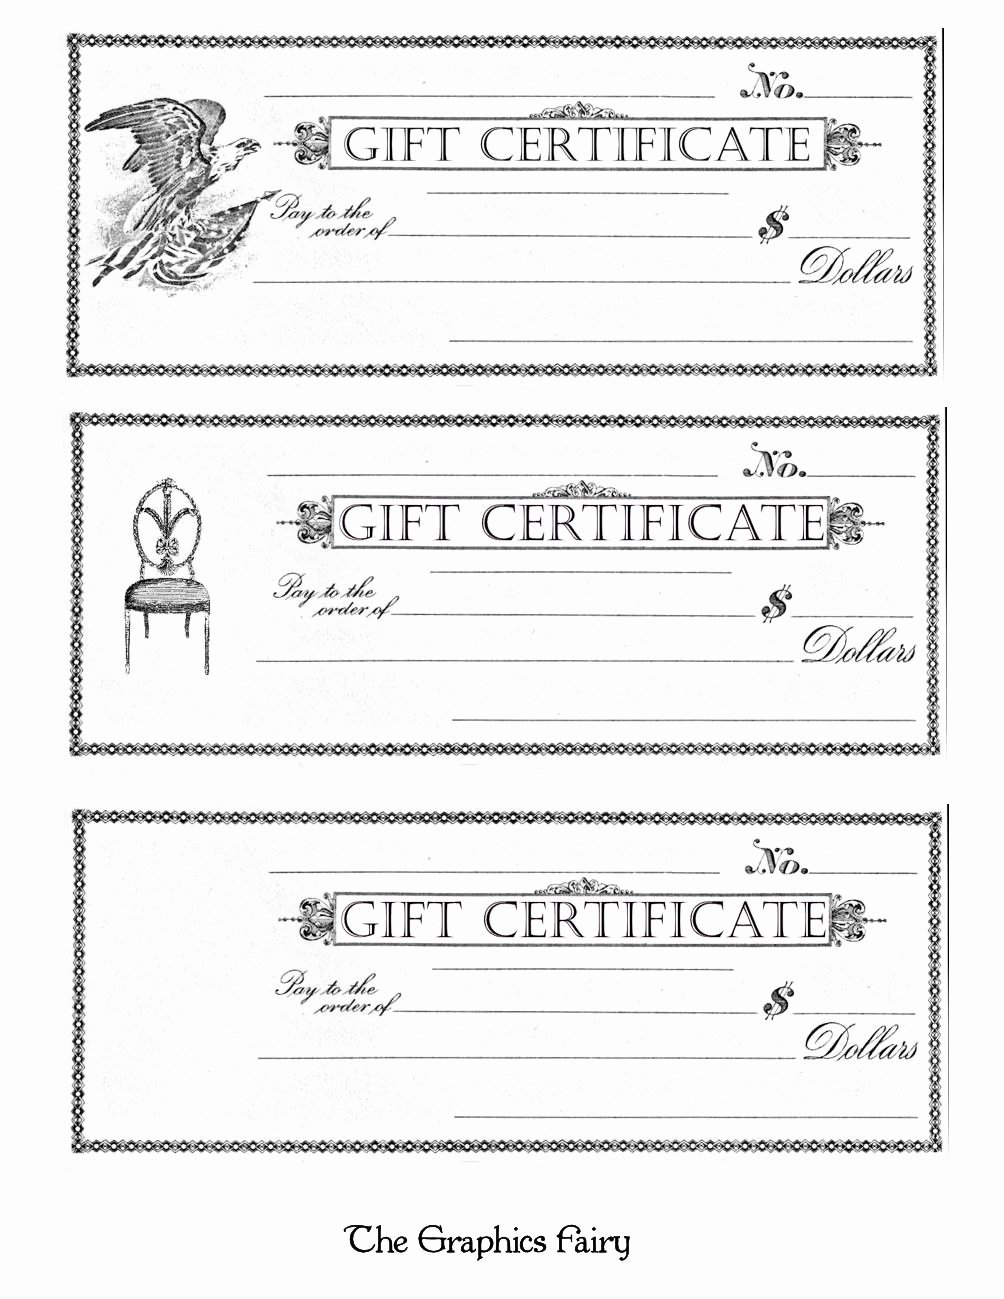 Blank Gift Card Template New Free Printable Gift Certificates the Graphics Fairy